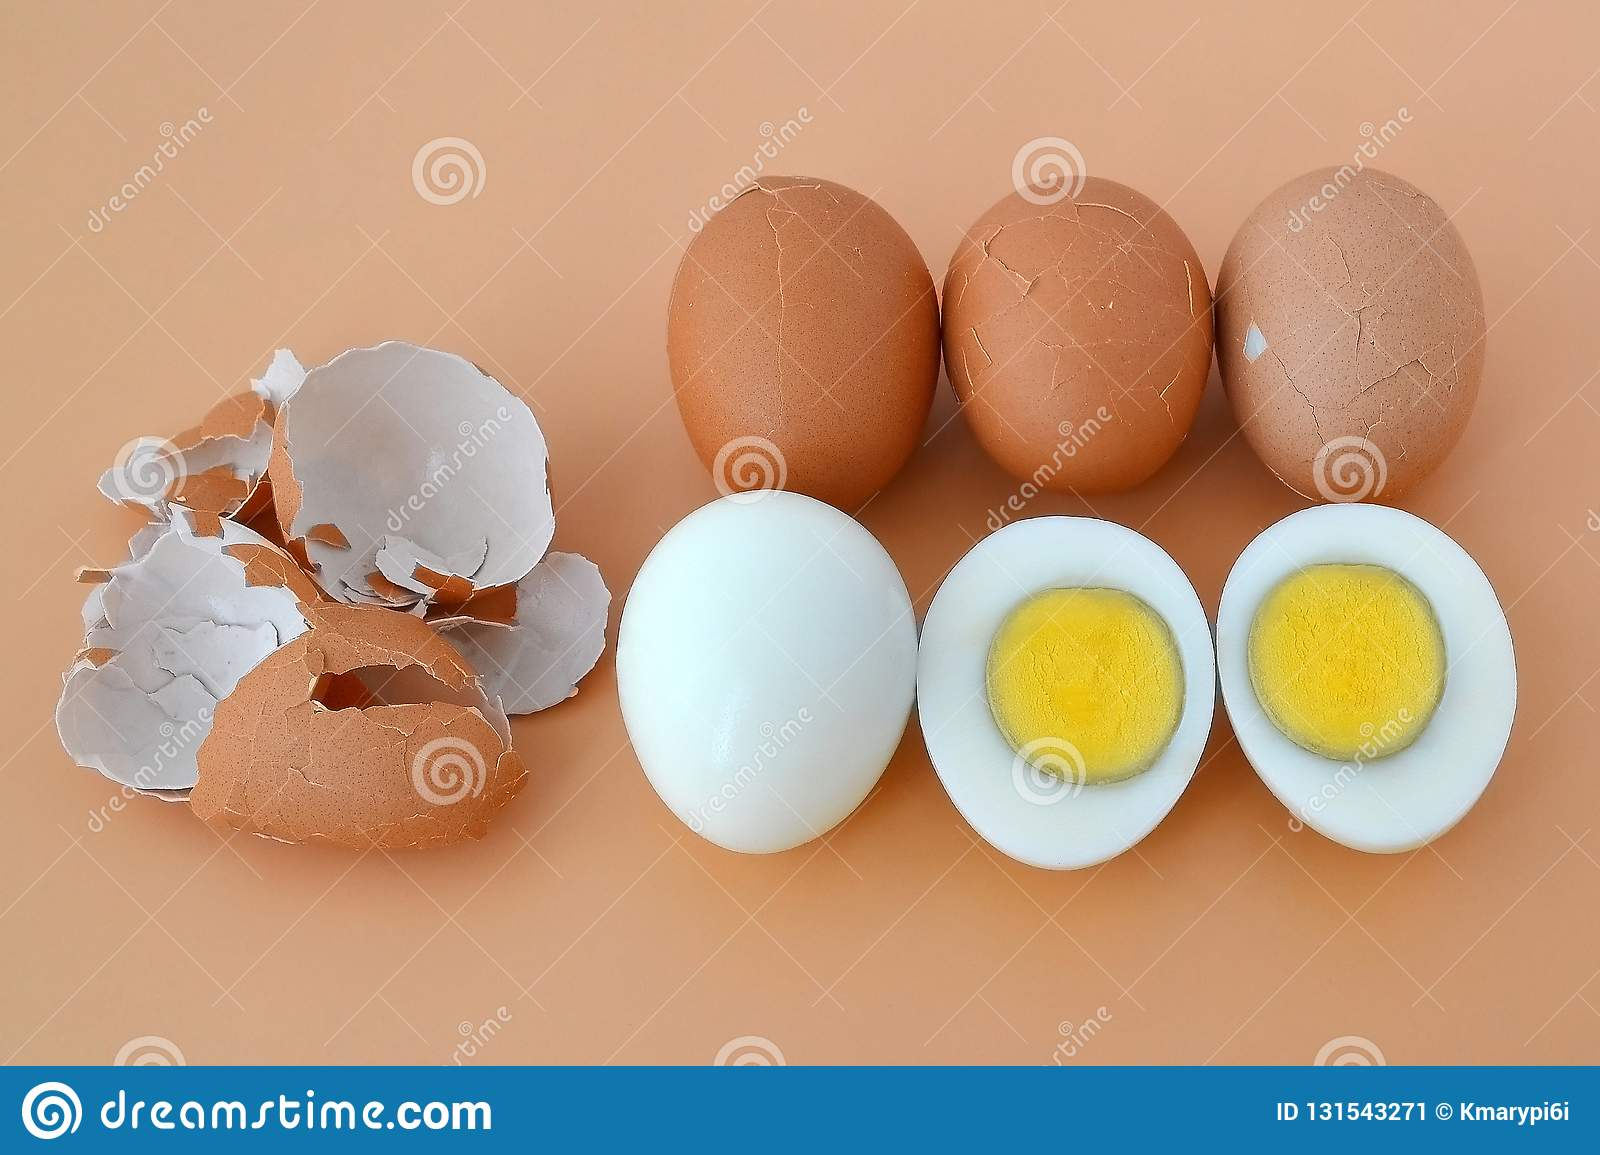 Five hard boiled brown chicken eggs on a brown background